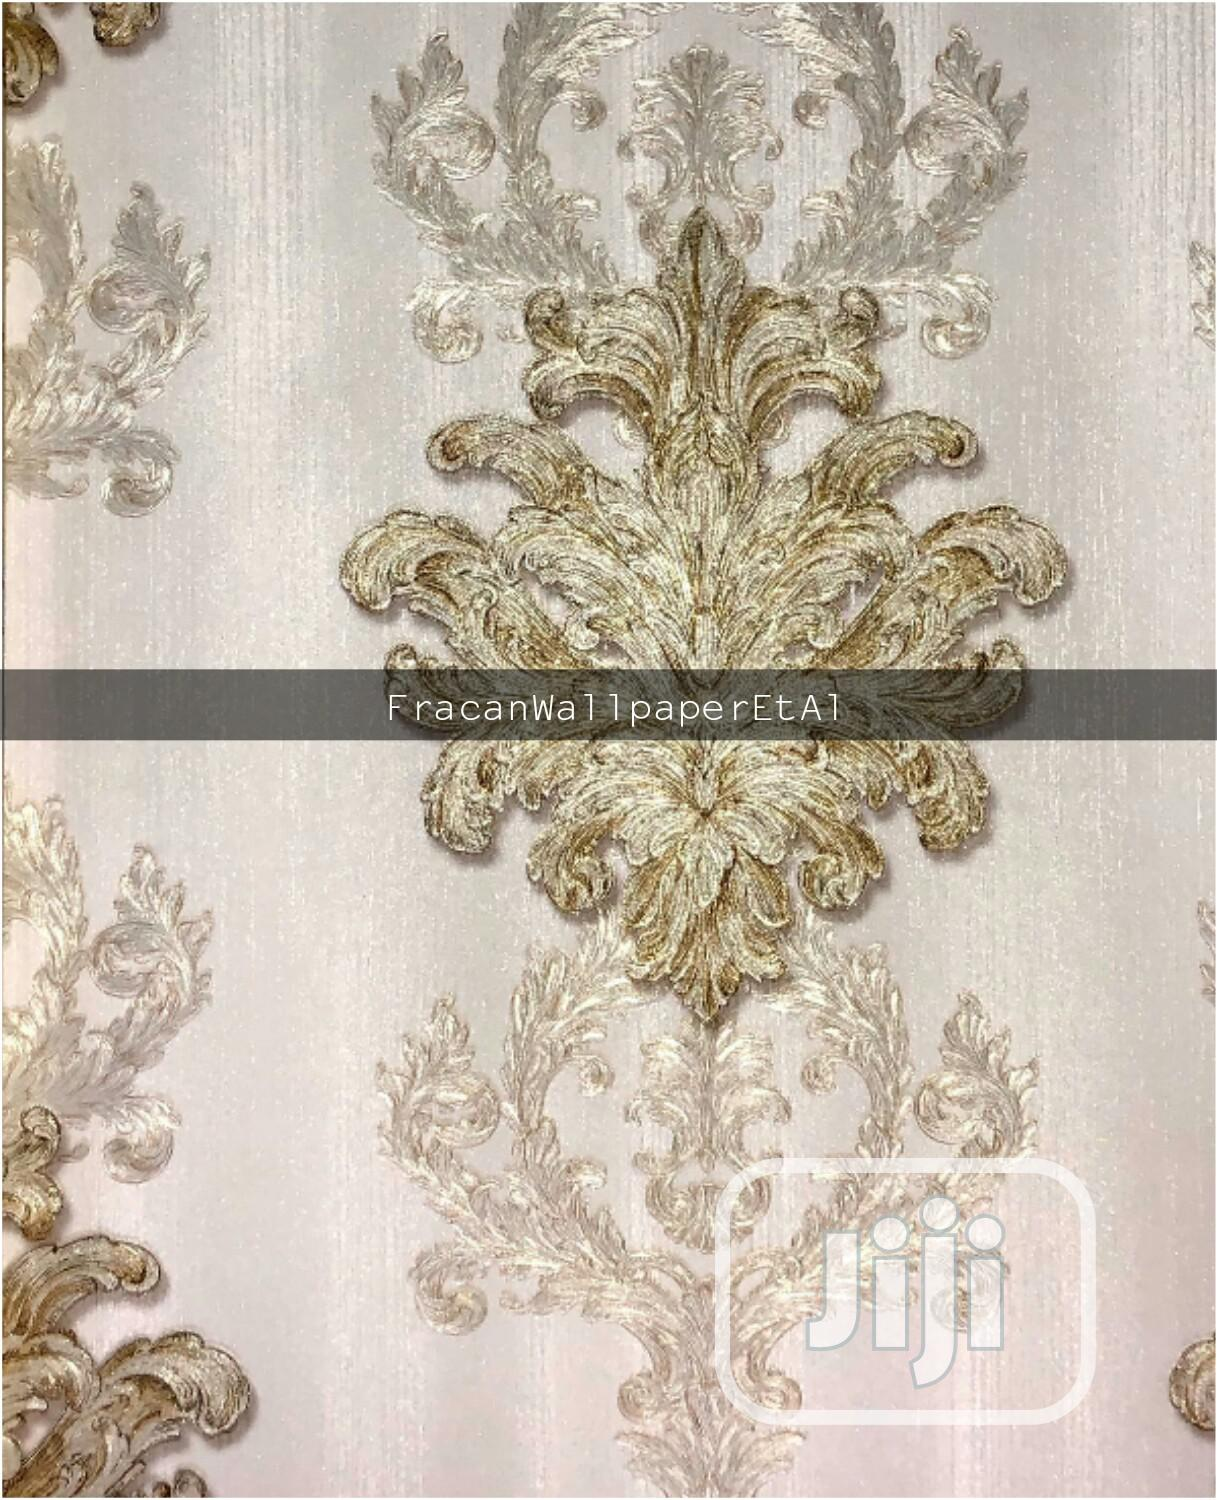 Wallpapers   Home Accessories for sale in Duboyi, Abuja (FCT) State, Nigeria